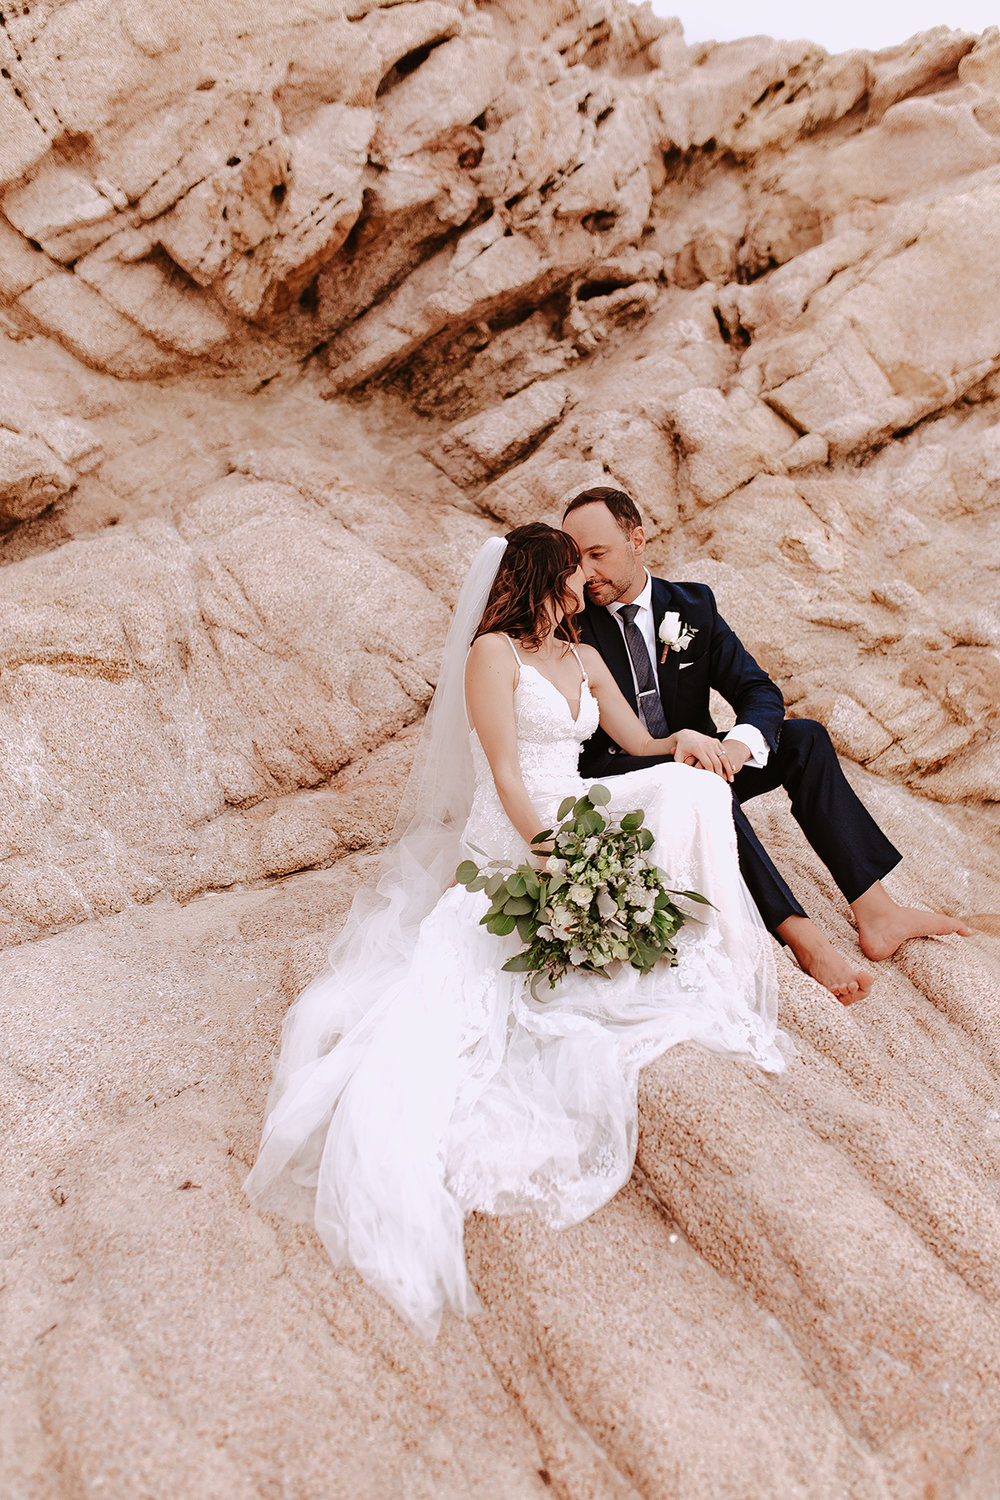 Lindsei+James_cabo_wedding_677.jpg